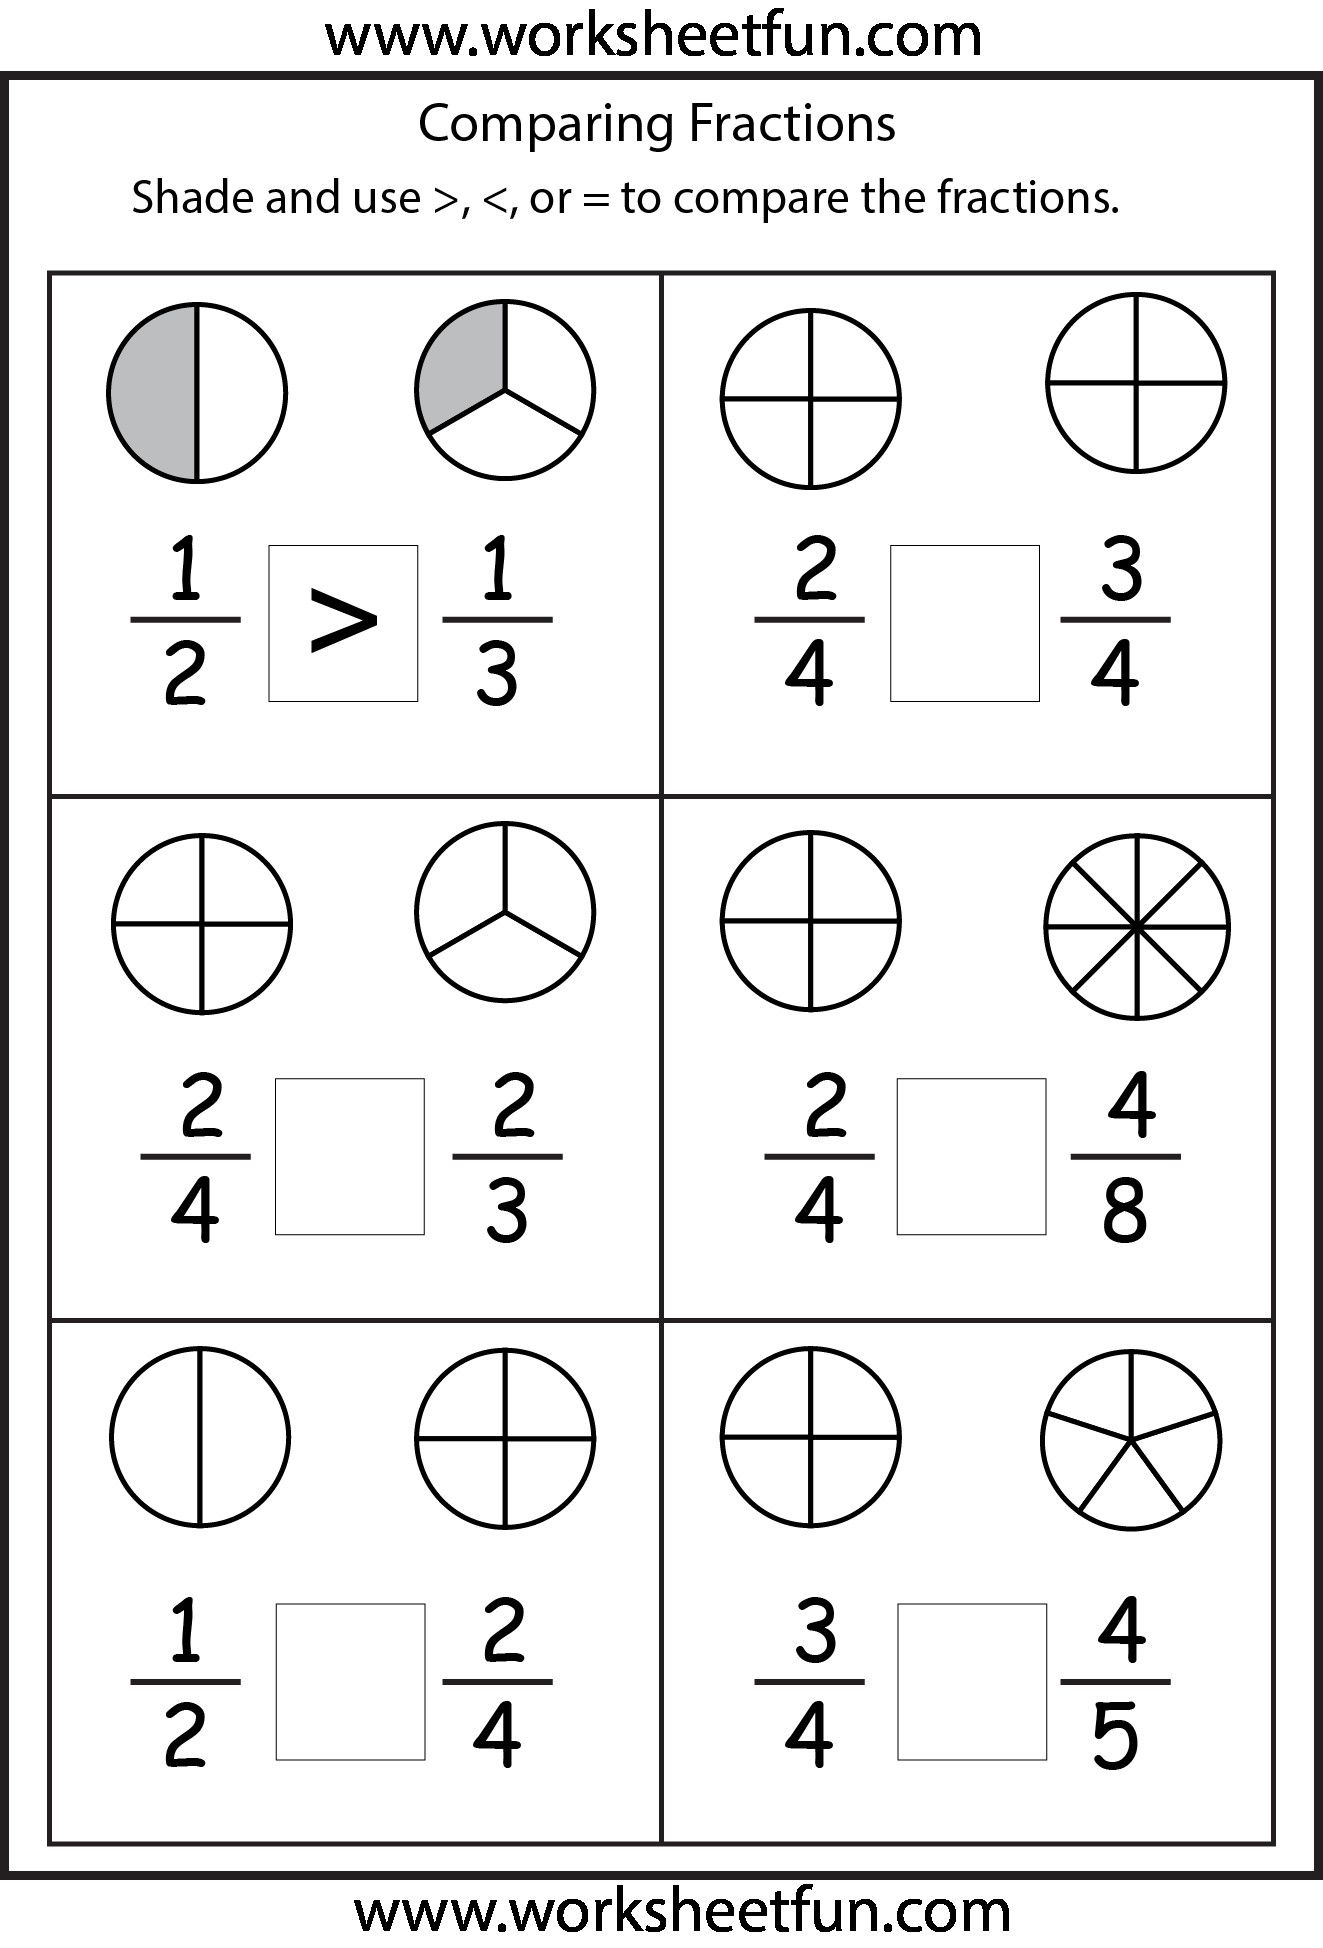 hight resolution of 5 Adding Fractions with Like Denominators Worksheets 2 in 2020   2nd grade  math worksheets